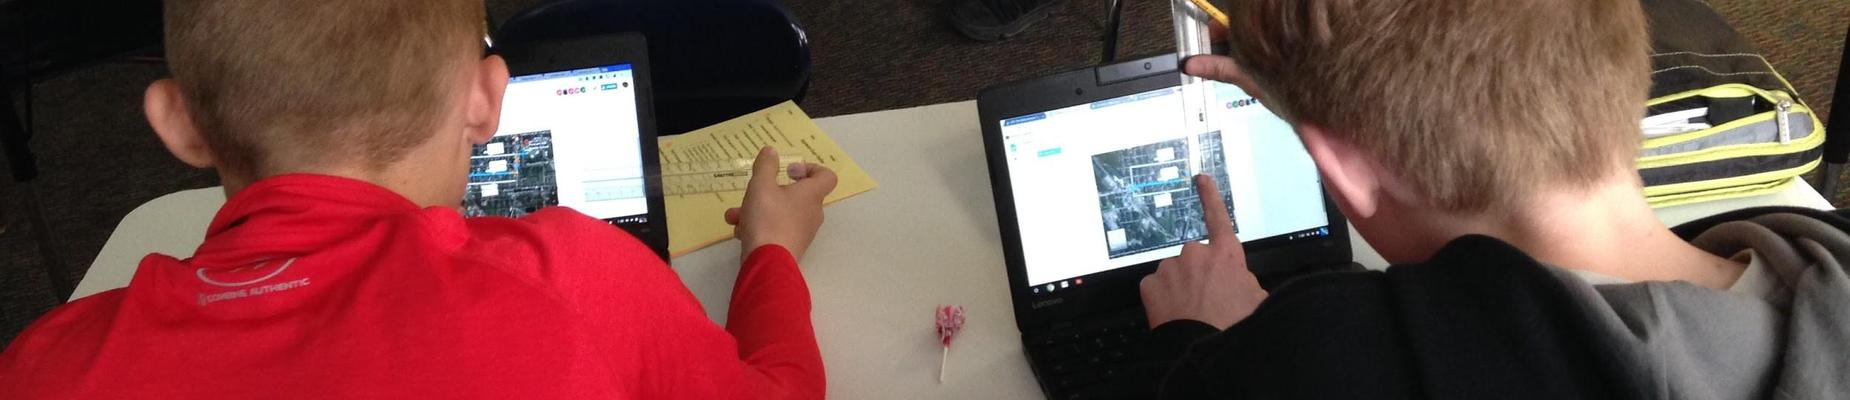 Students using Chromebooks to determine distance